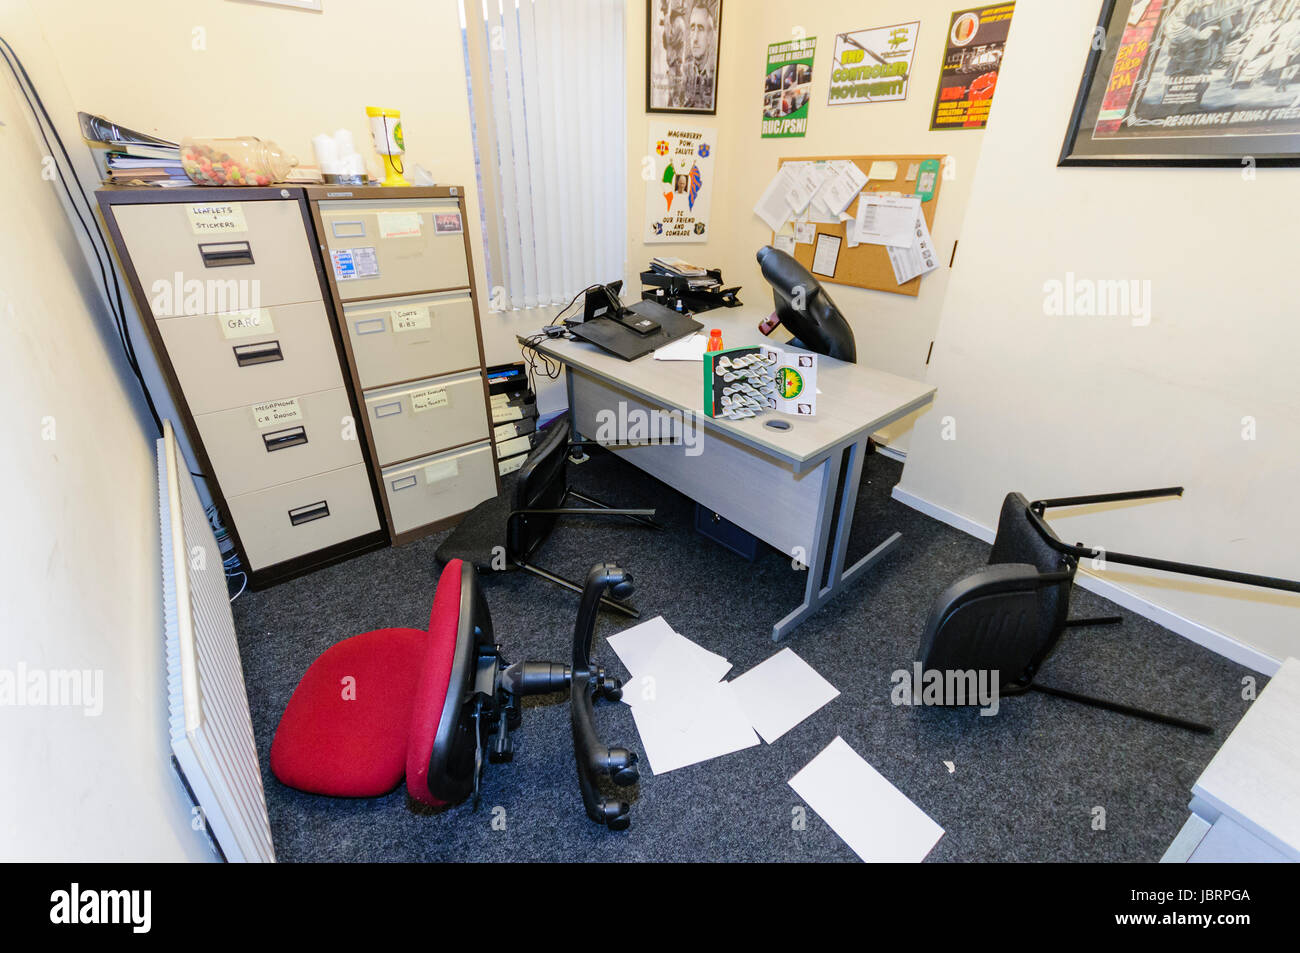 Belfast, Northern Ireland. 12 Jun 2017 - Acting on intelligence received, the PSNI raided offices use by IRPWA, - Stock Image